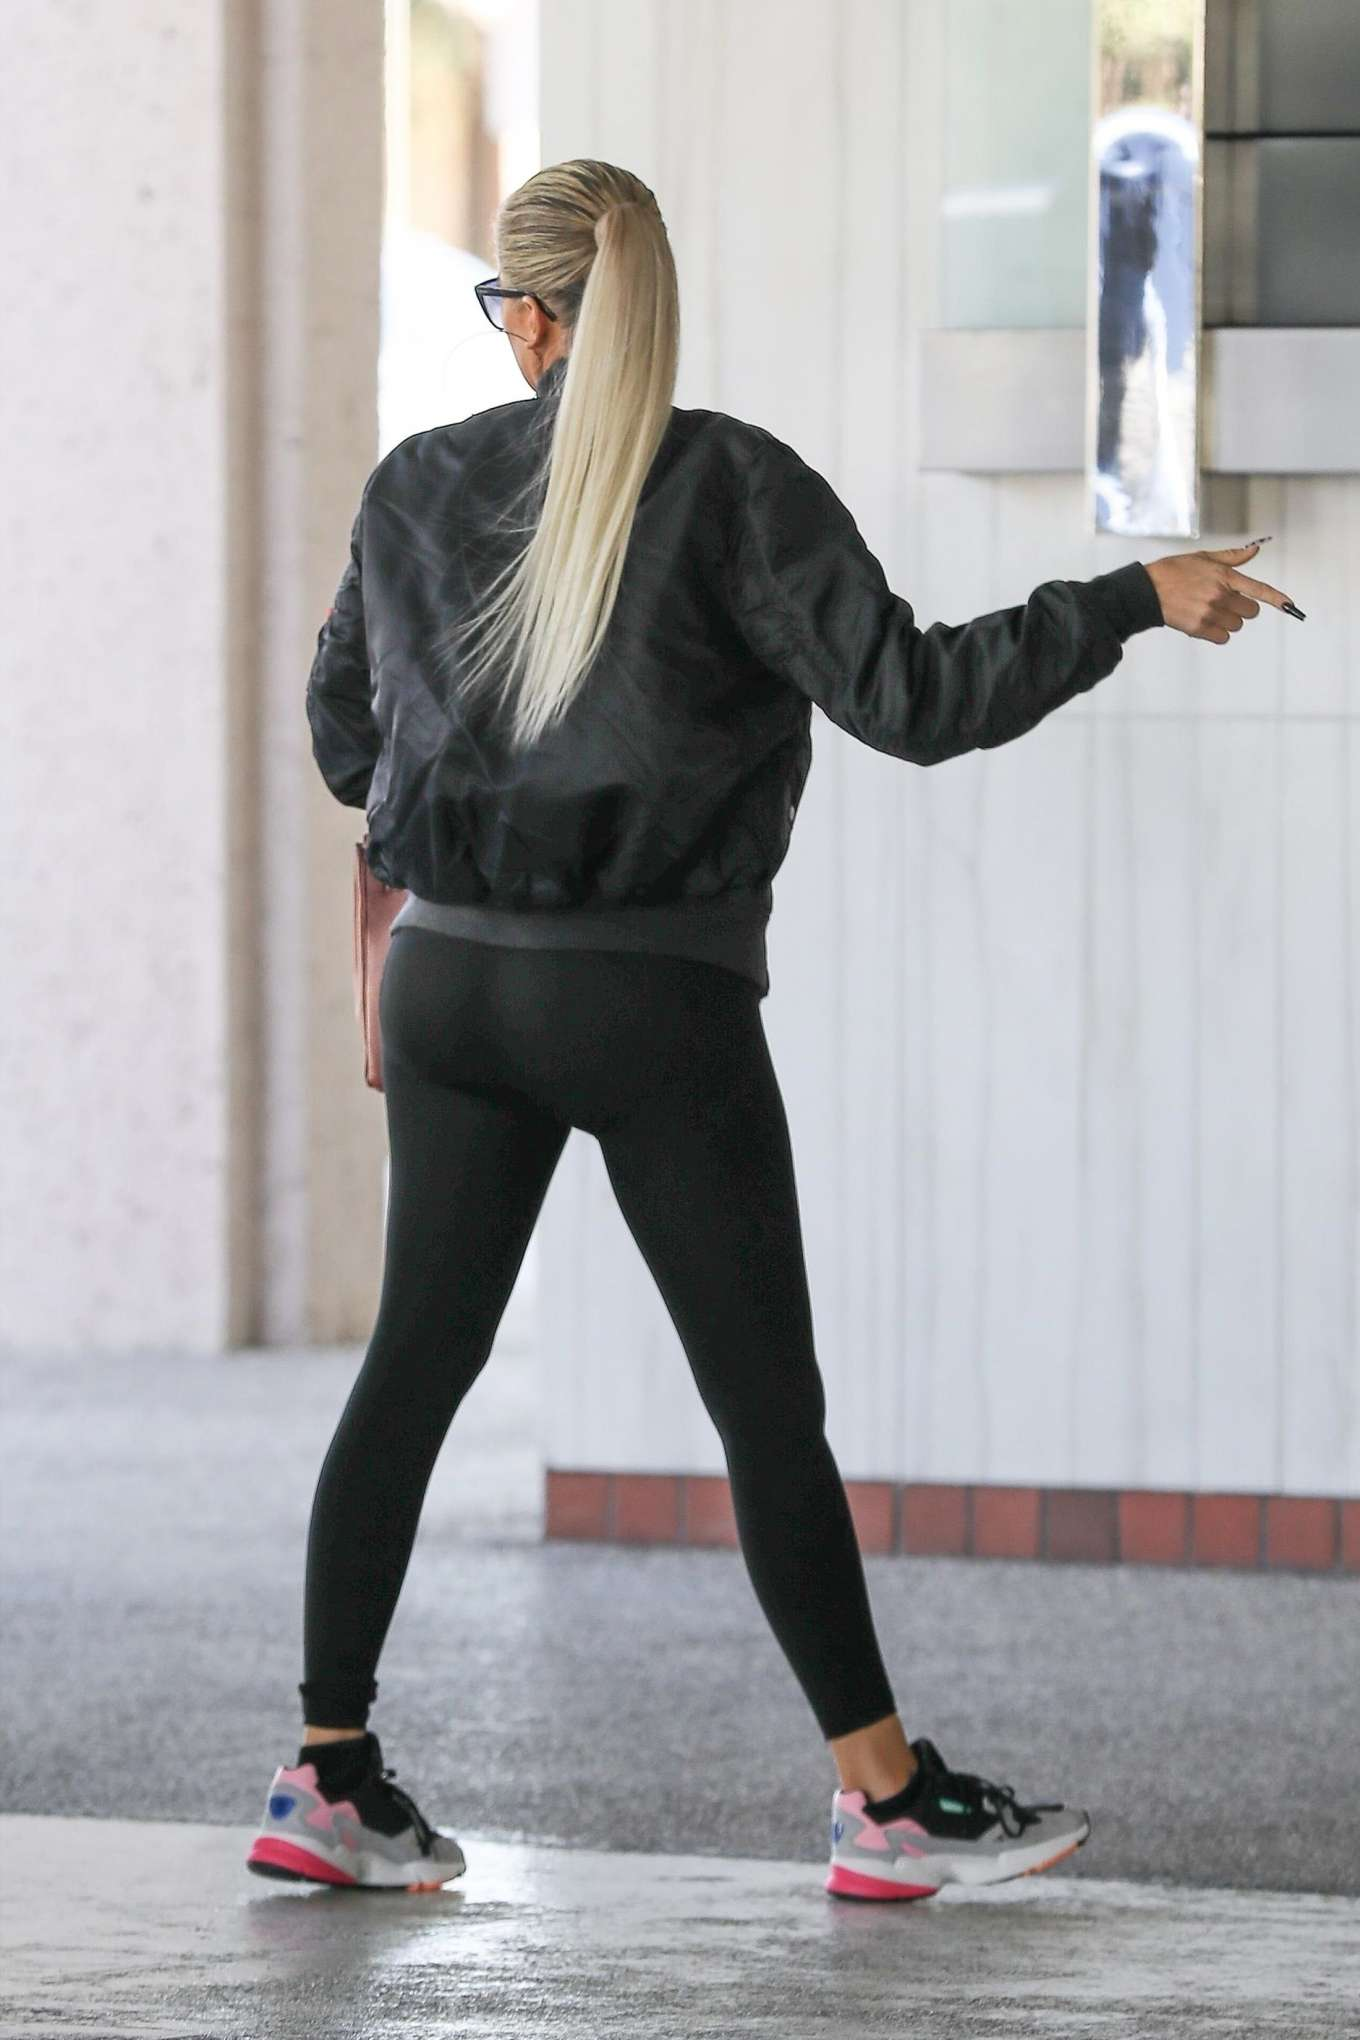 Khloe Kardashian in Spandex - Arriving at a Doctor's office in Los Angeles